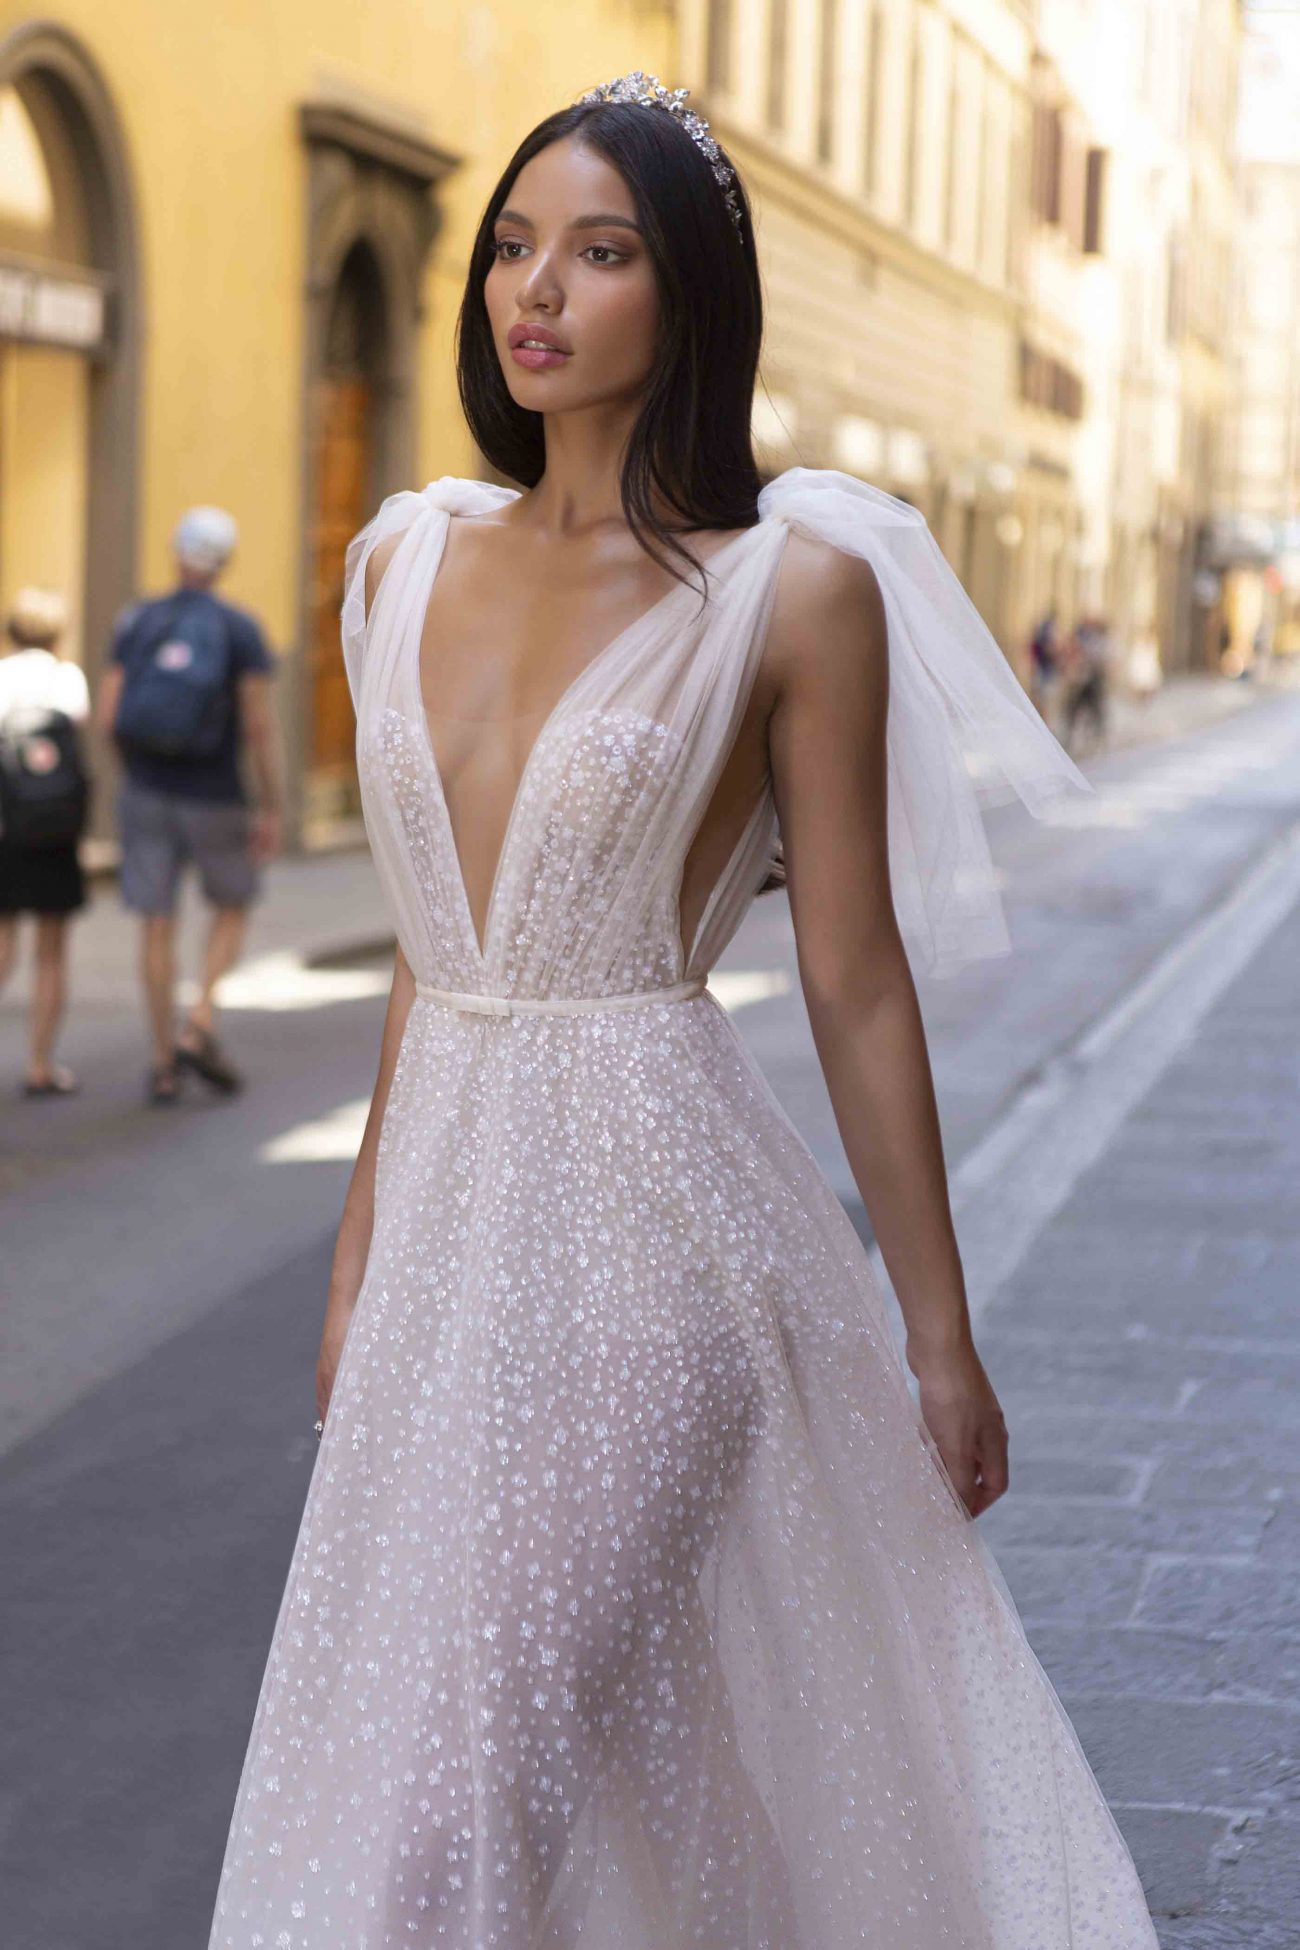 24 Of The Hottest Wedding Dress Styles In 2020 Once Wed,Low Cost Wedding Dresses Online